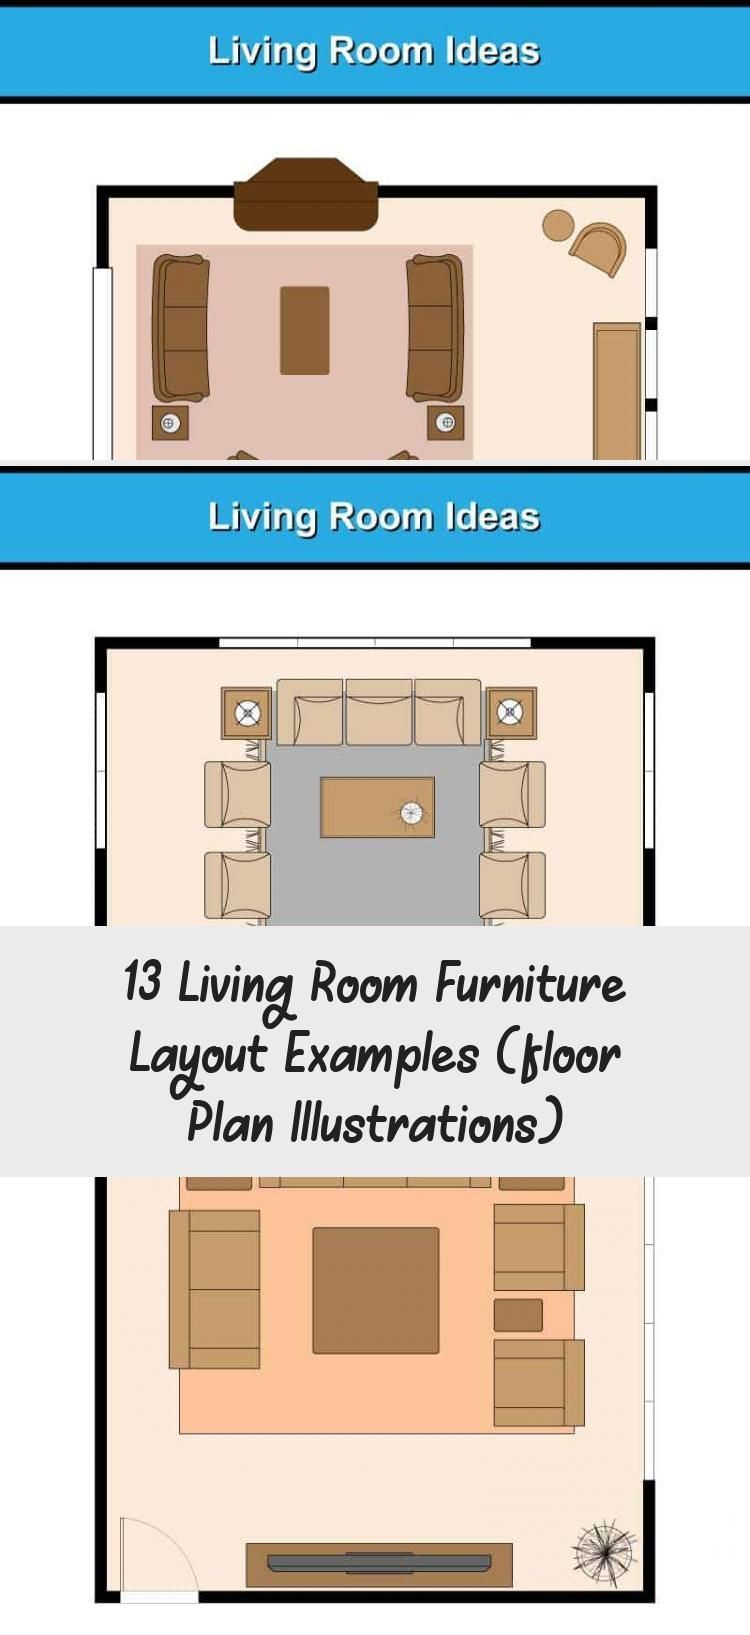 13 Living Room Furniture Layout Examples Floor Plan Illustrations Ideas Here S An In 2020 Furniture Layout Living Room Furniture Layout Living Room Floor Plans